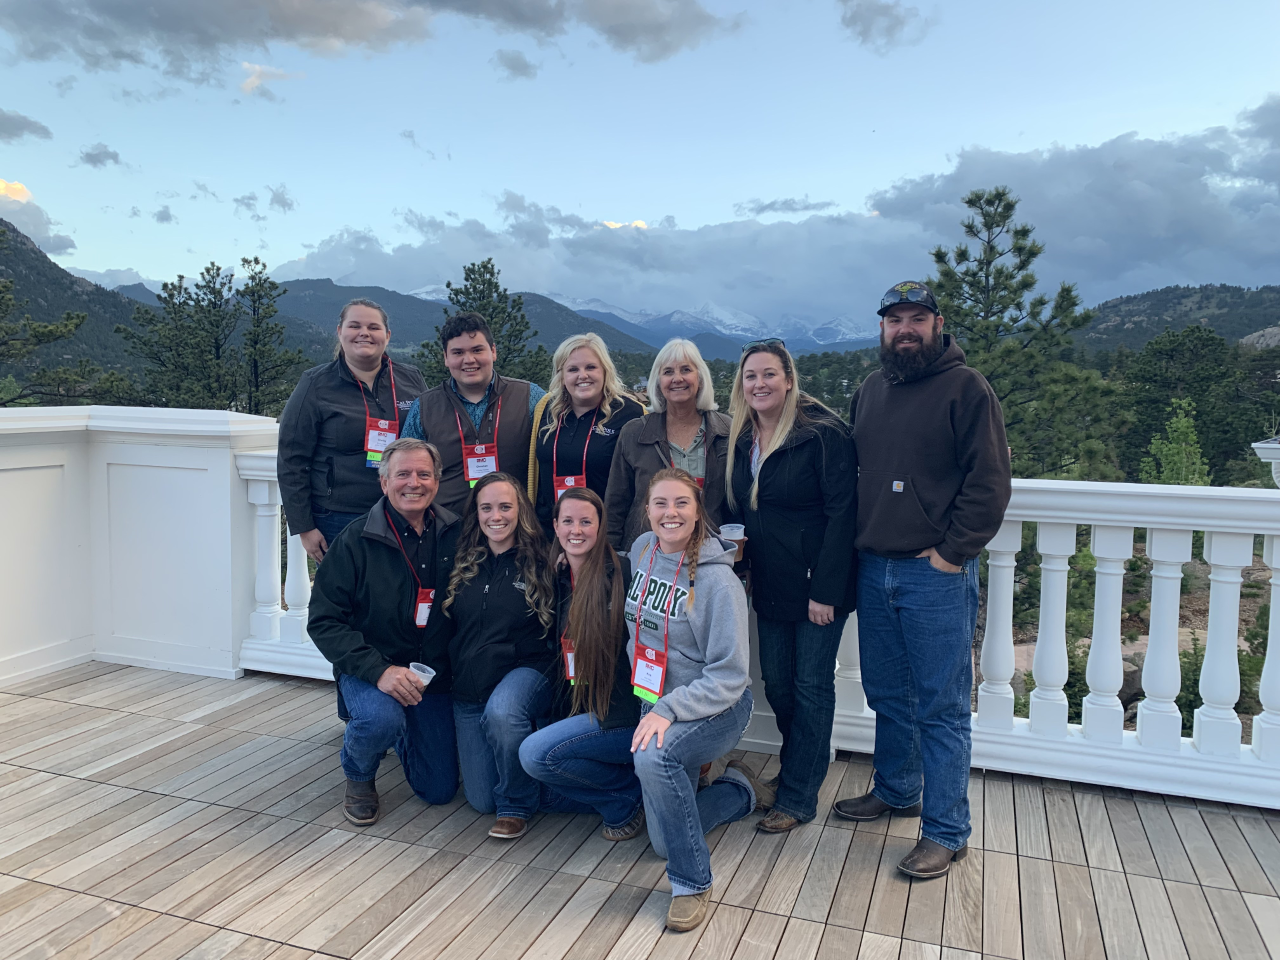 Cal Poly enjoying the views at the famous Stanley Hotel in Estes Park, CO.